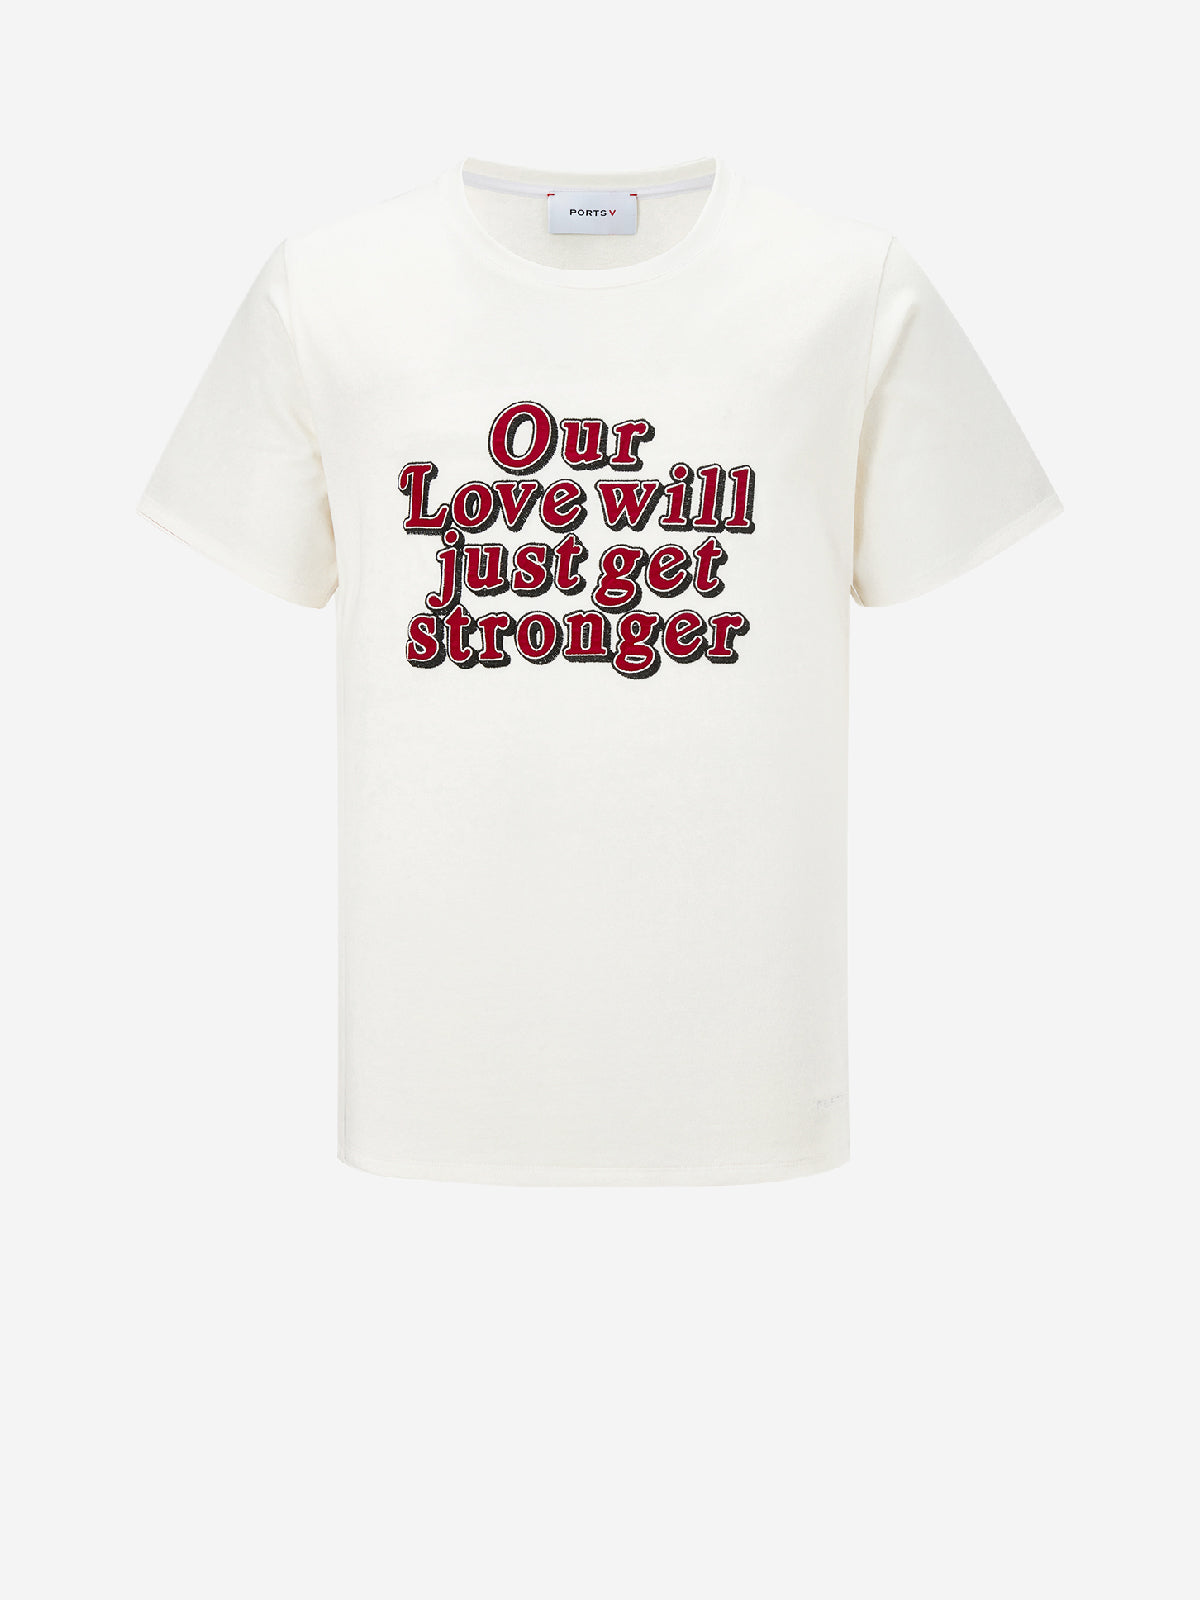 OUR LOVE WILL GET STRONGER T-Shirt